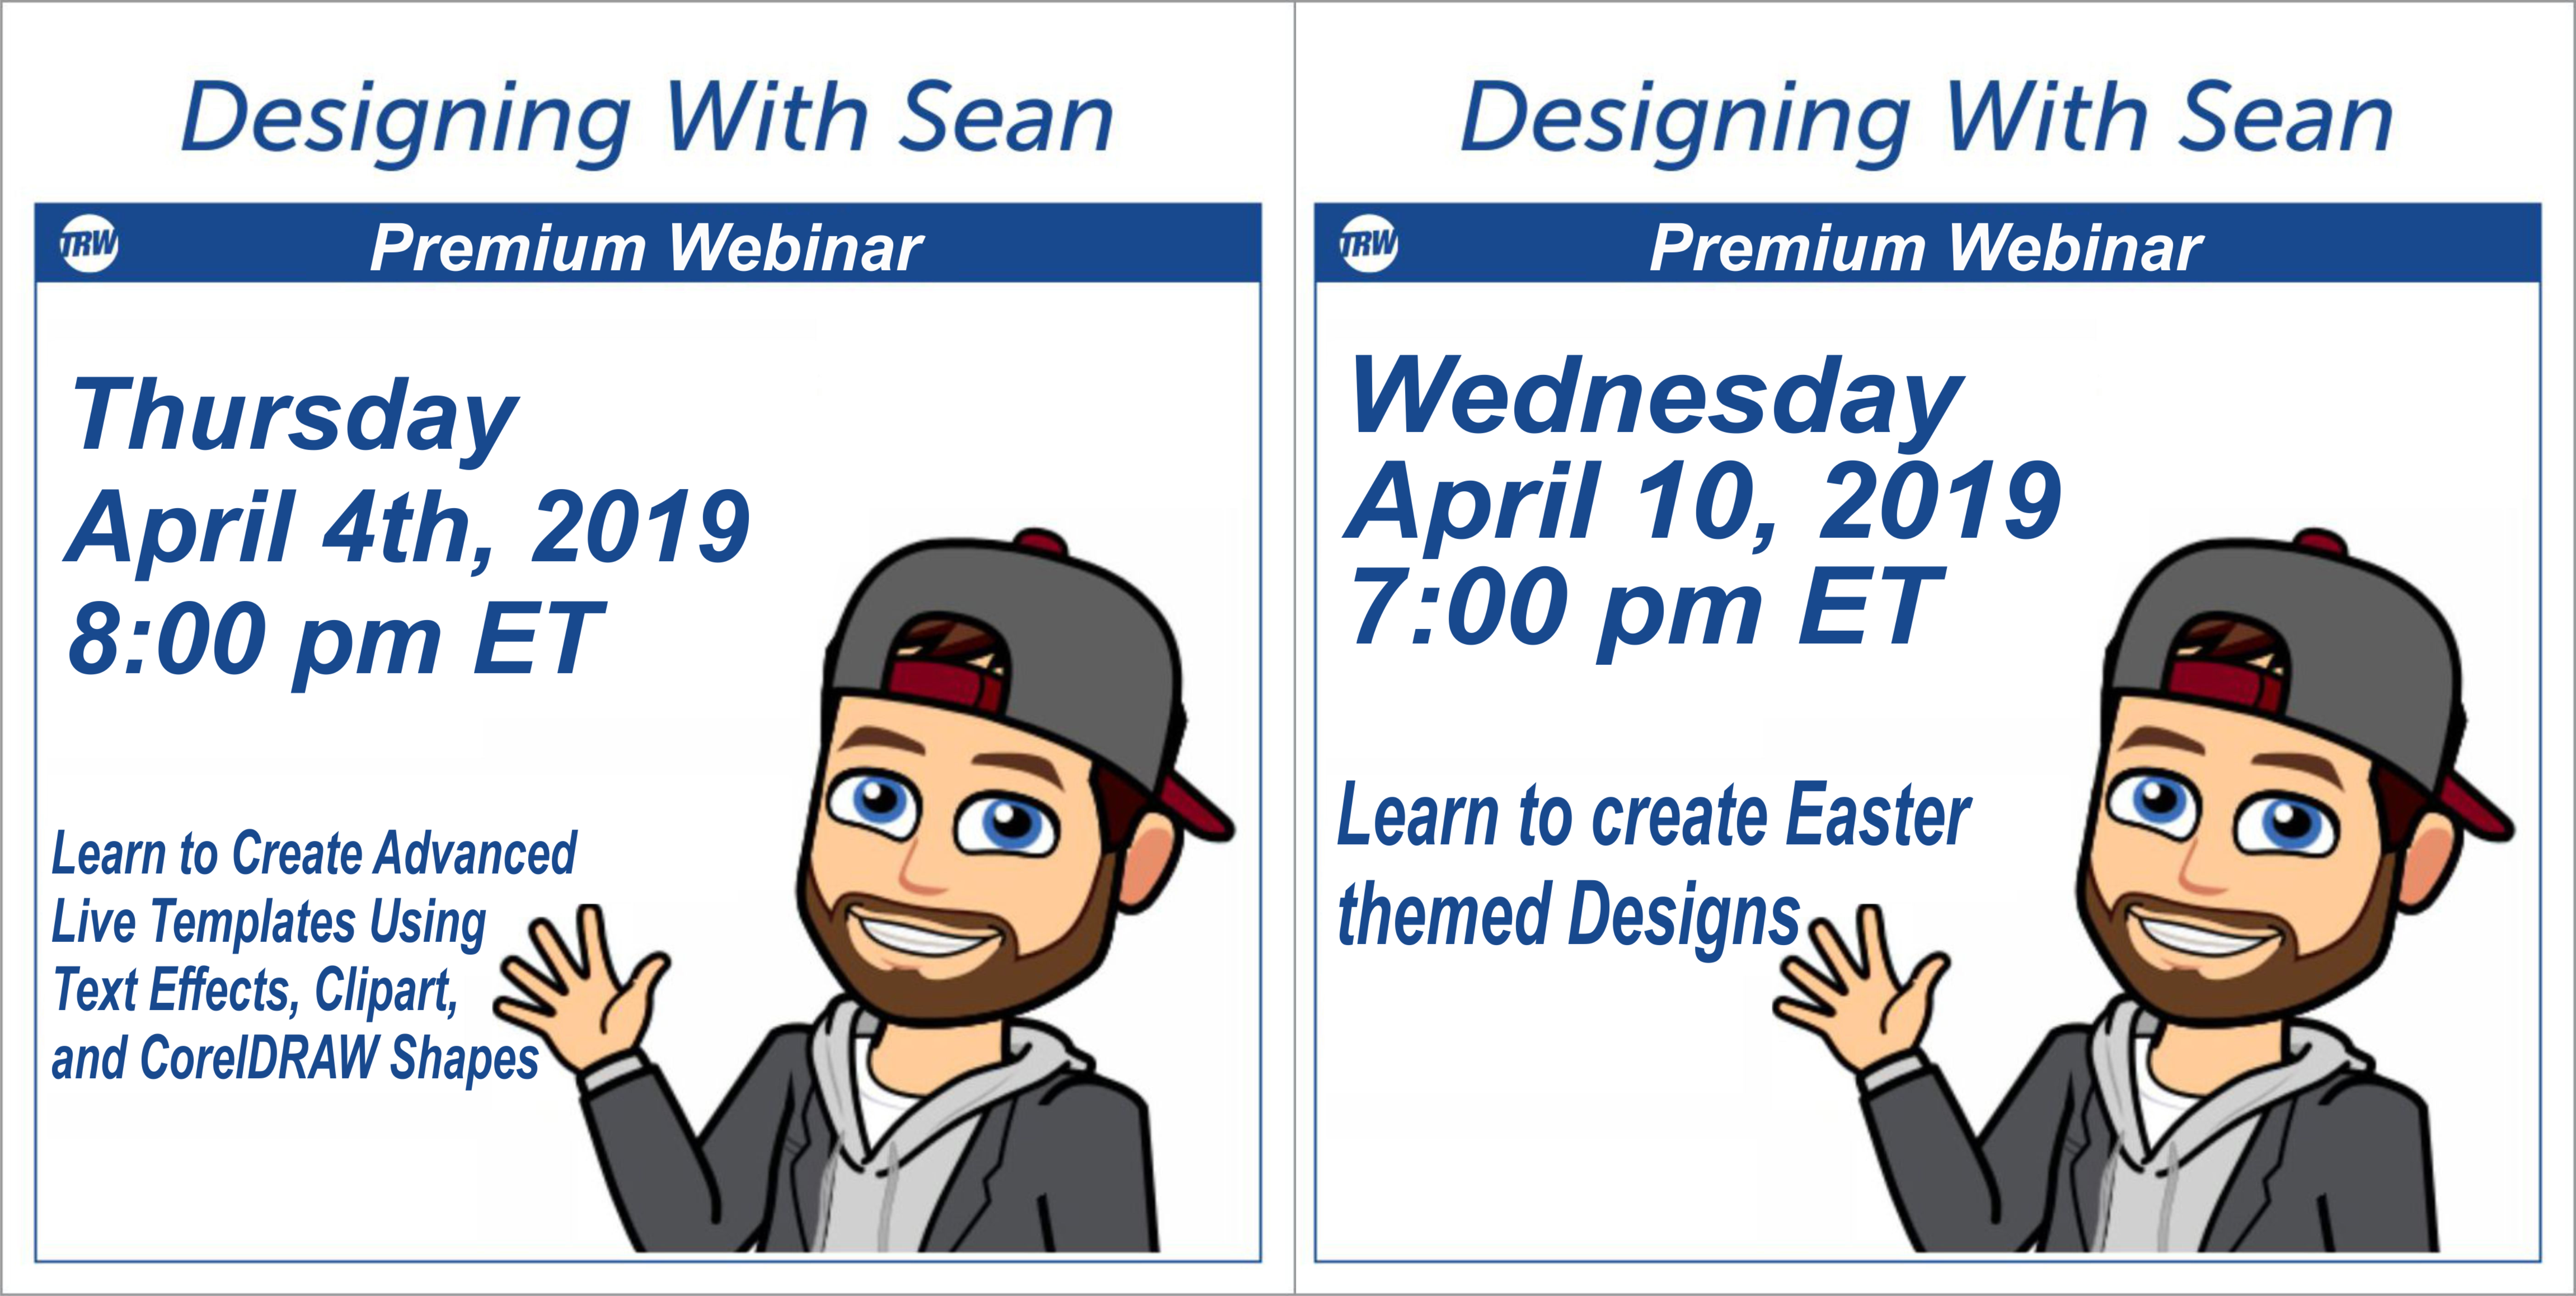 4/4/19 Designing with Sean - Advanced Live Templates and Easter Themed Designs